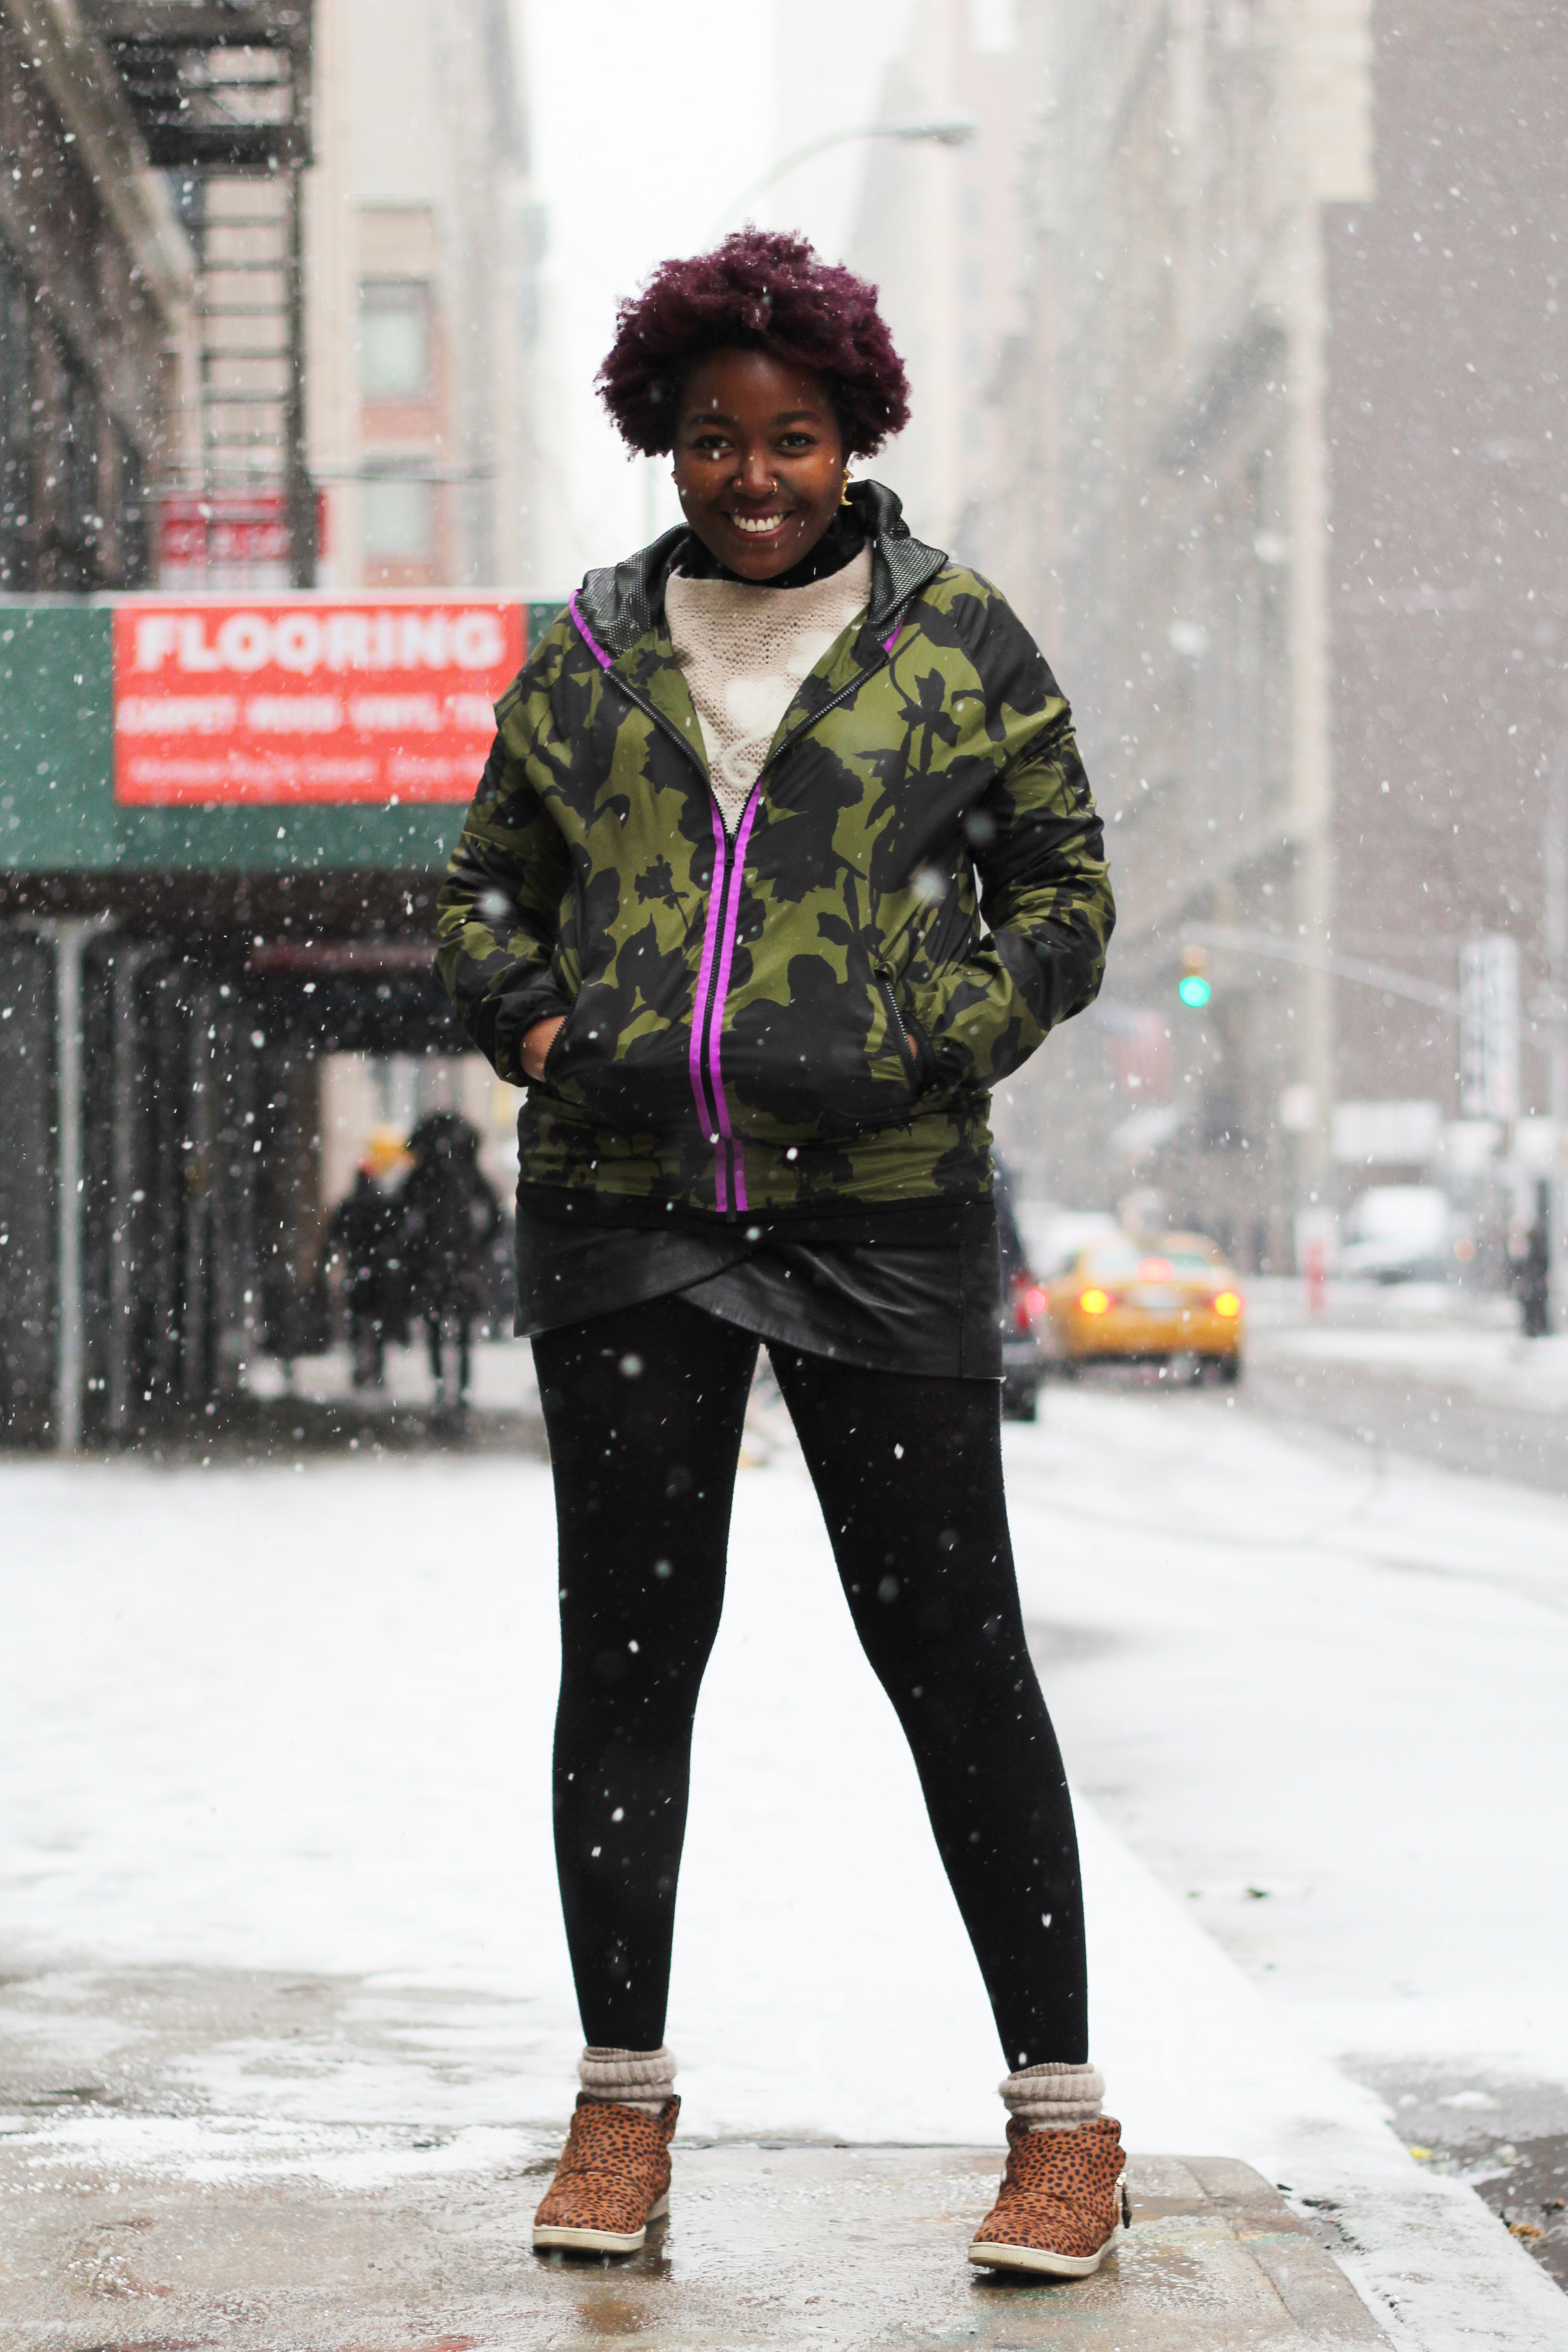 black woman in the snow